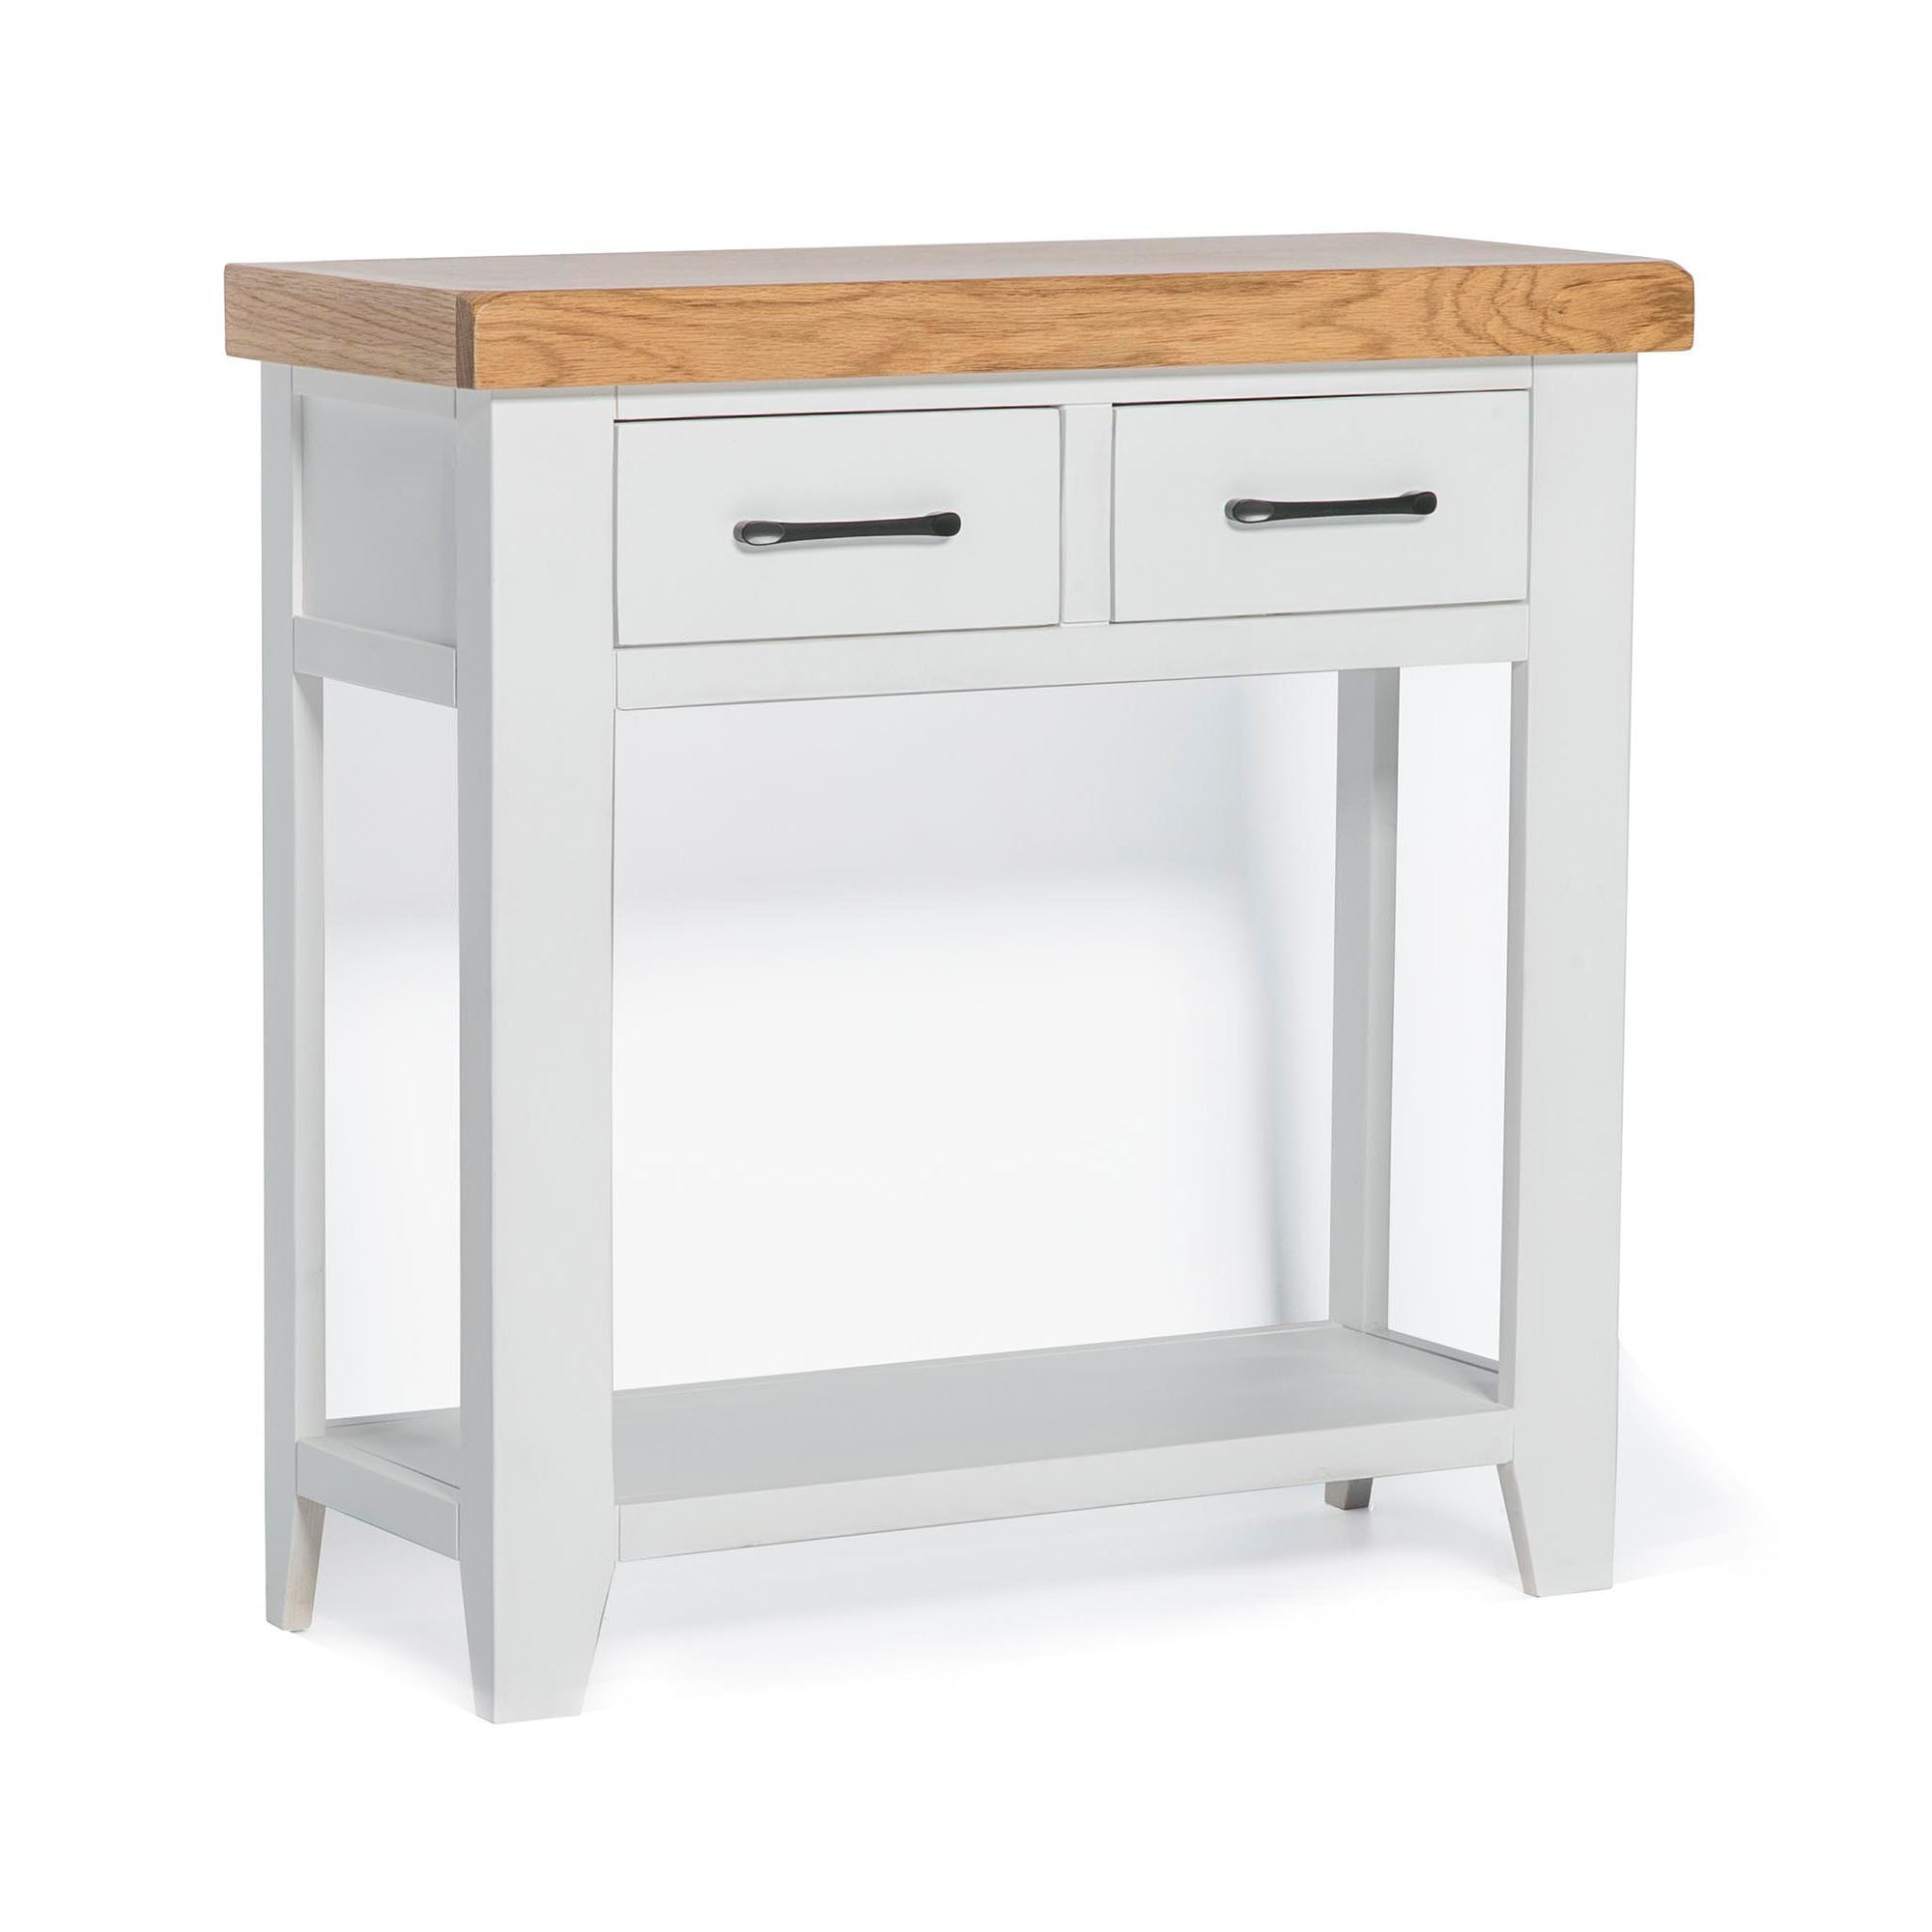 Chatsworth White Console Table by Roseland Furniture